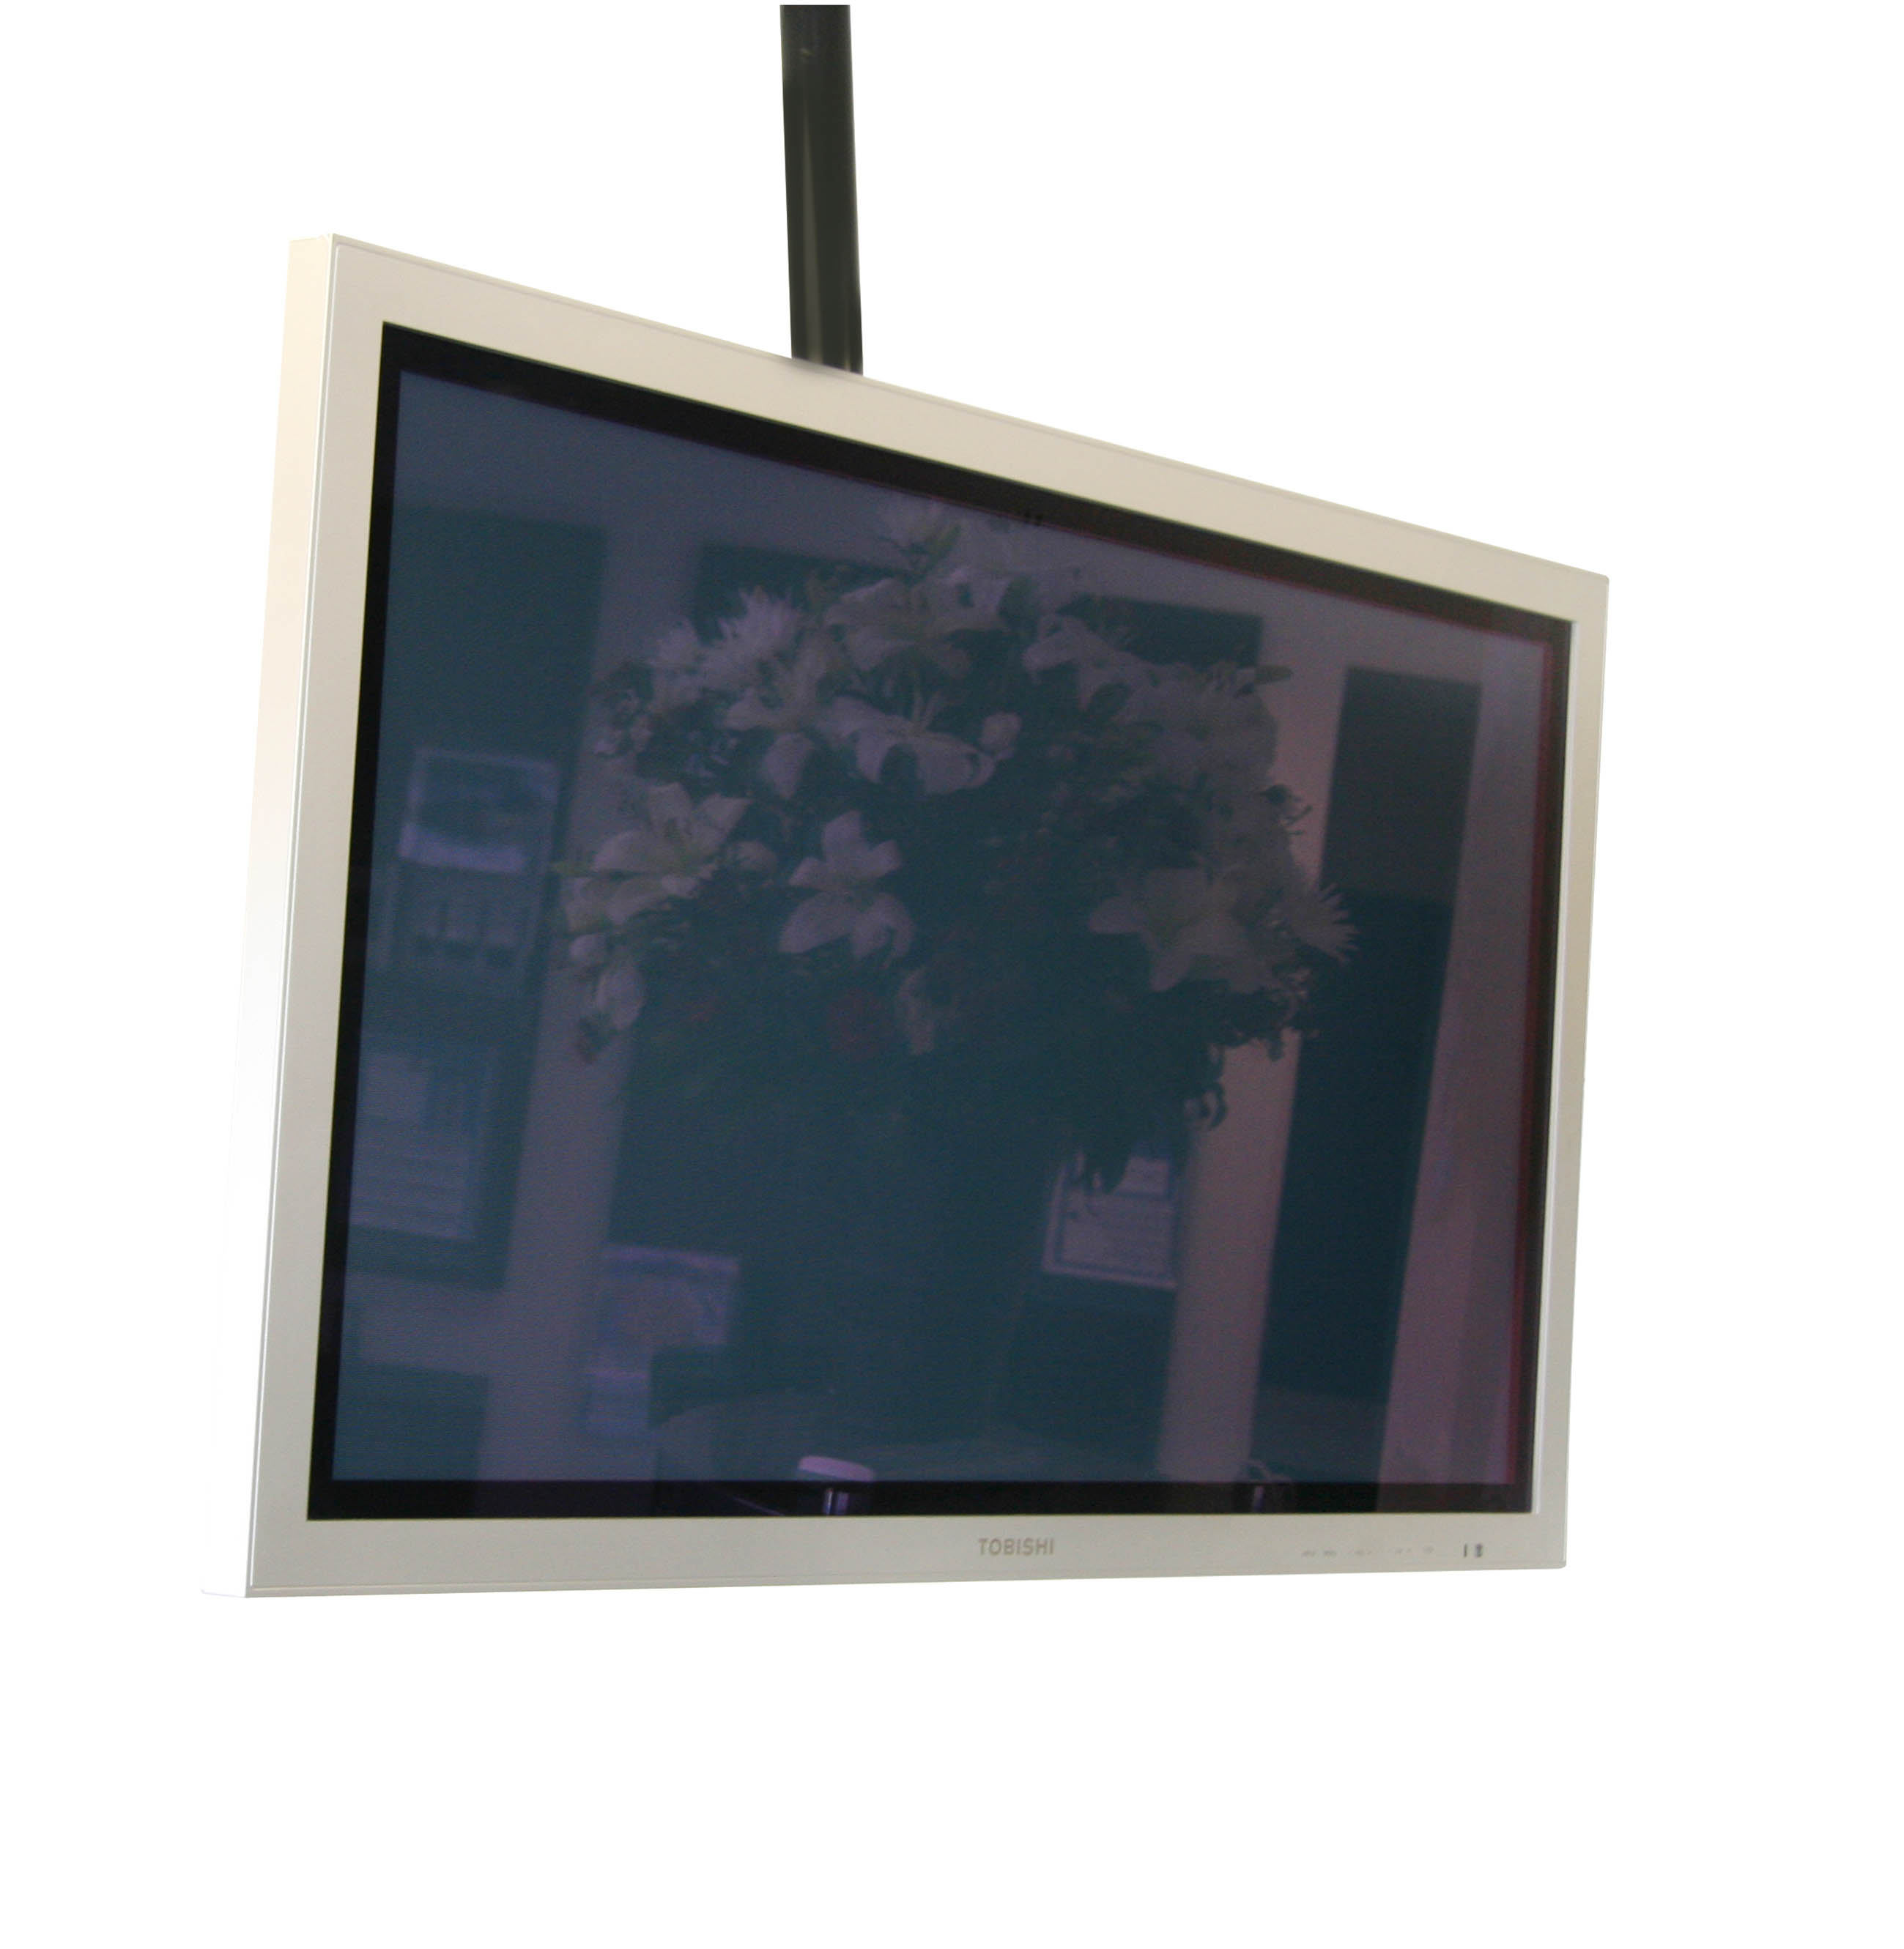 led and adjustable tilts screen height to ceiling display up most plasma bracket vesa tv swivels index mount monitor simbr lcd fits